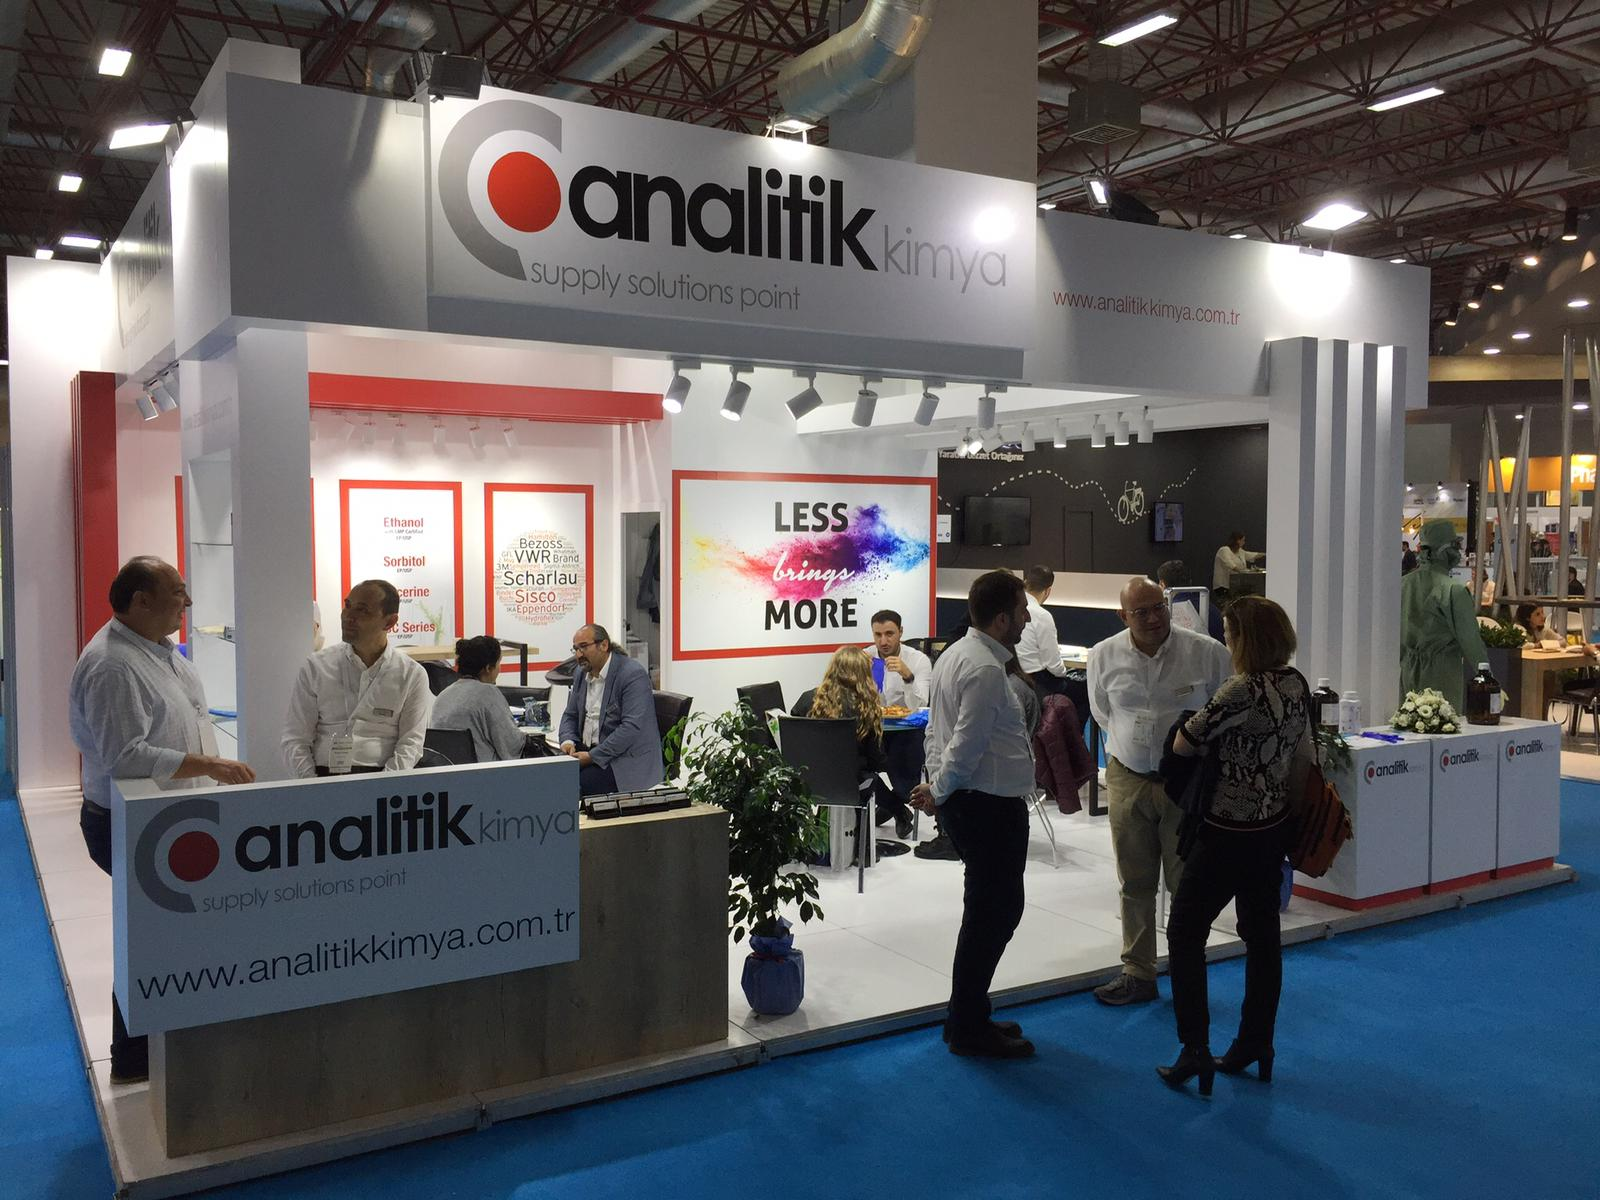 <a href='application-detail/188'>CLICK HERE - PHARMAIST ISTANBUL 2019 ANALITIK STAND   SHOW MORE<a/>